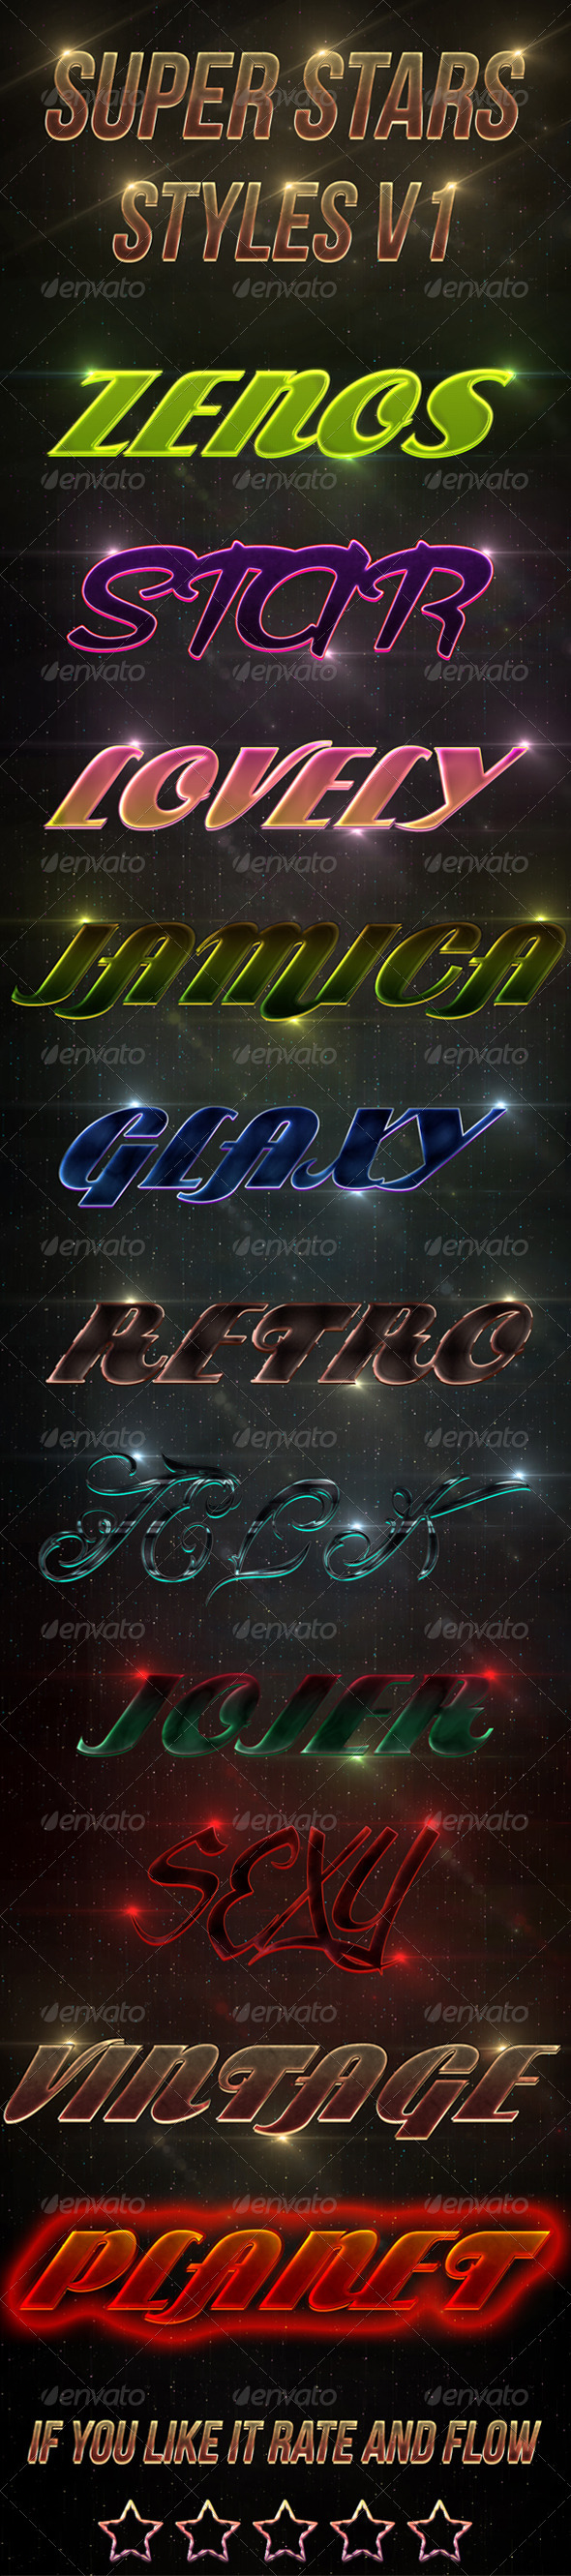 Super Stars Styles V1 - Text Effects Styles